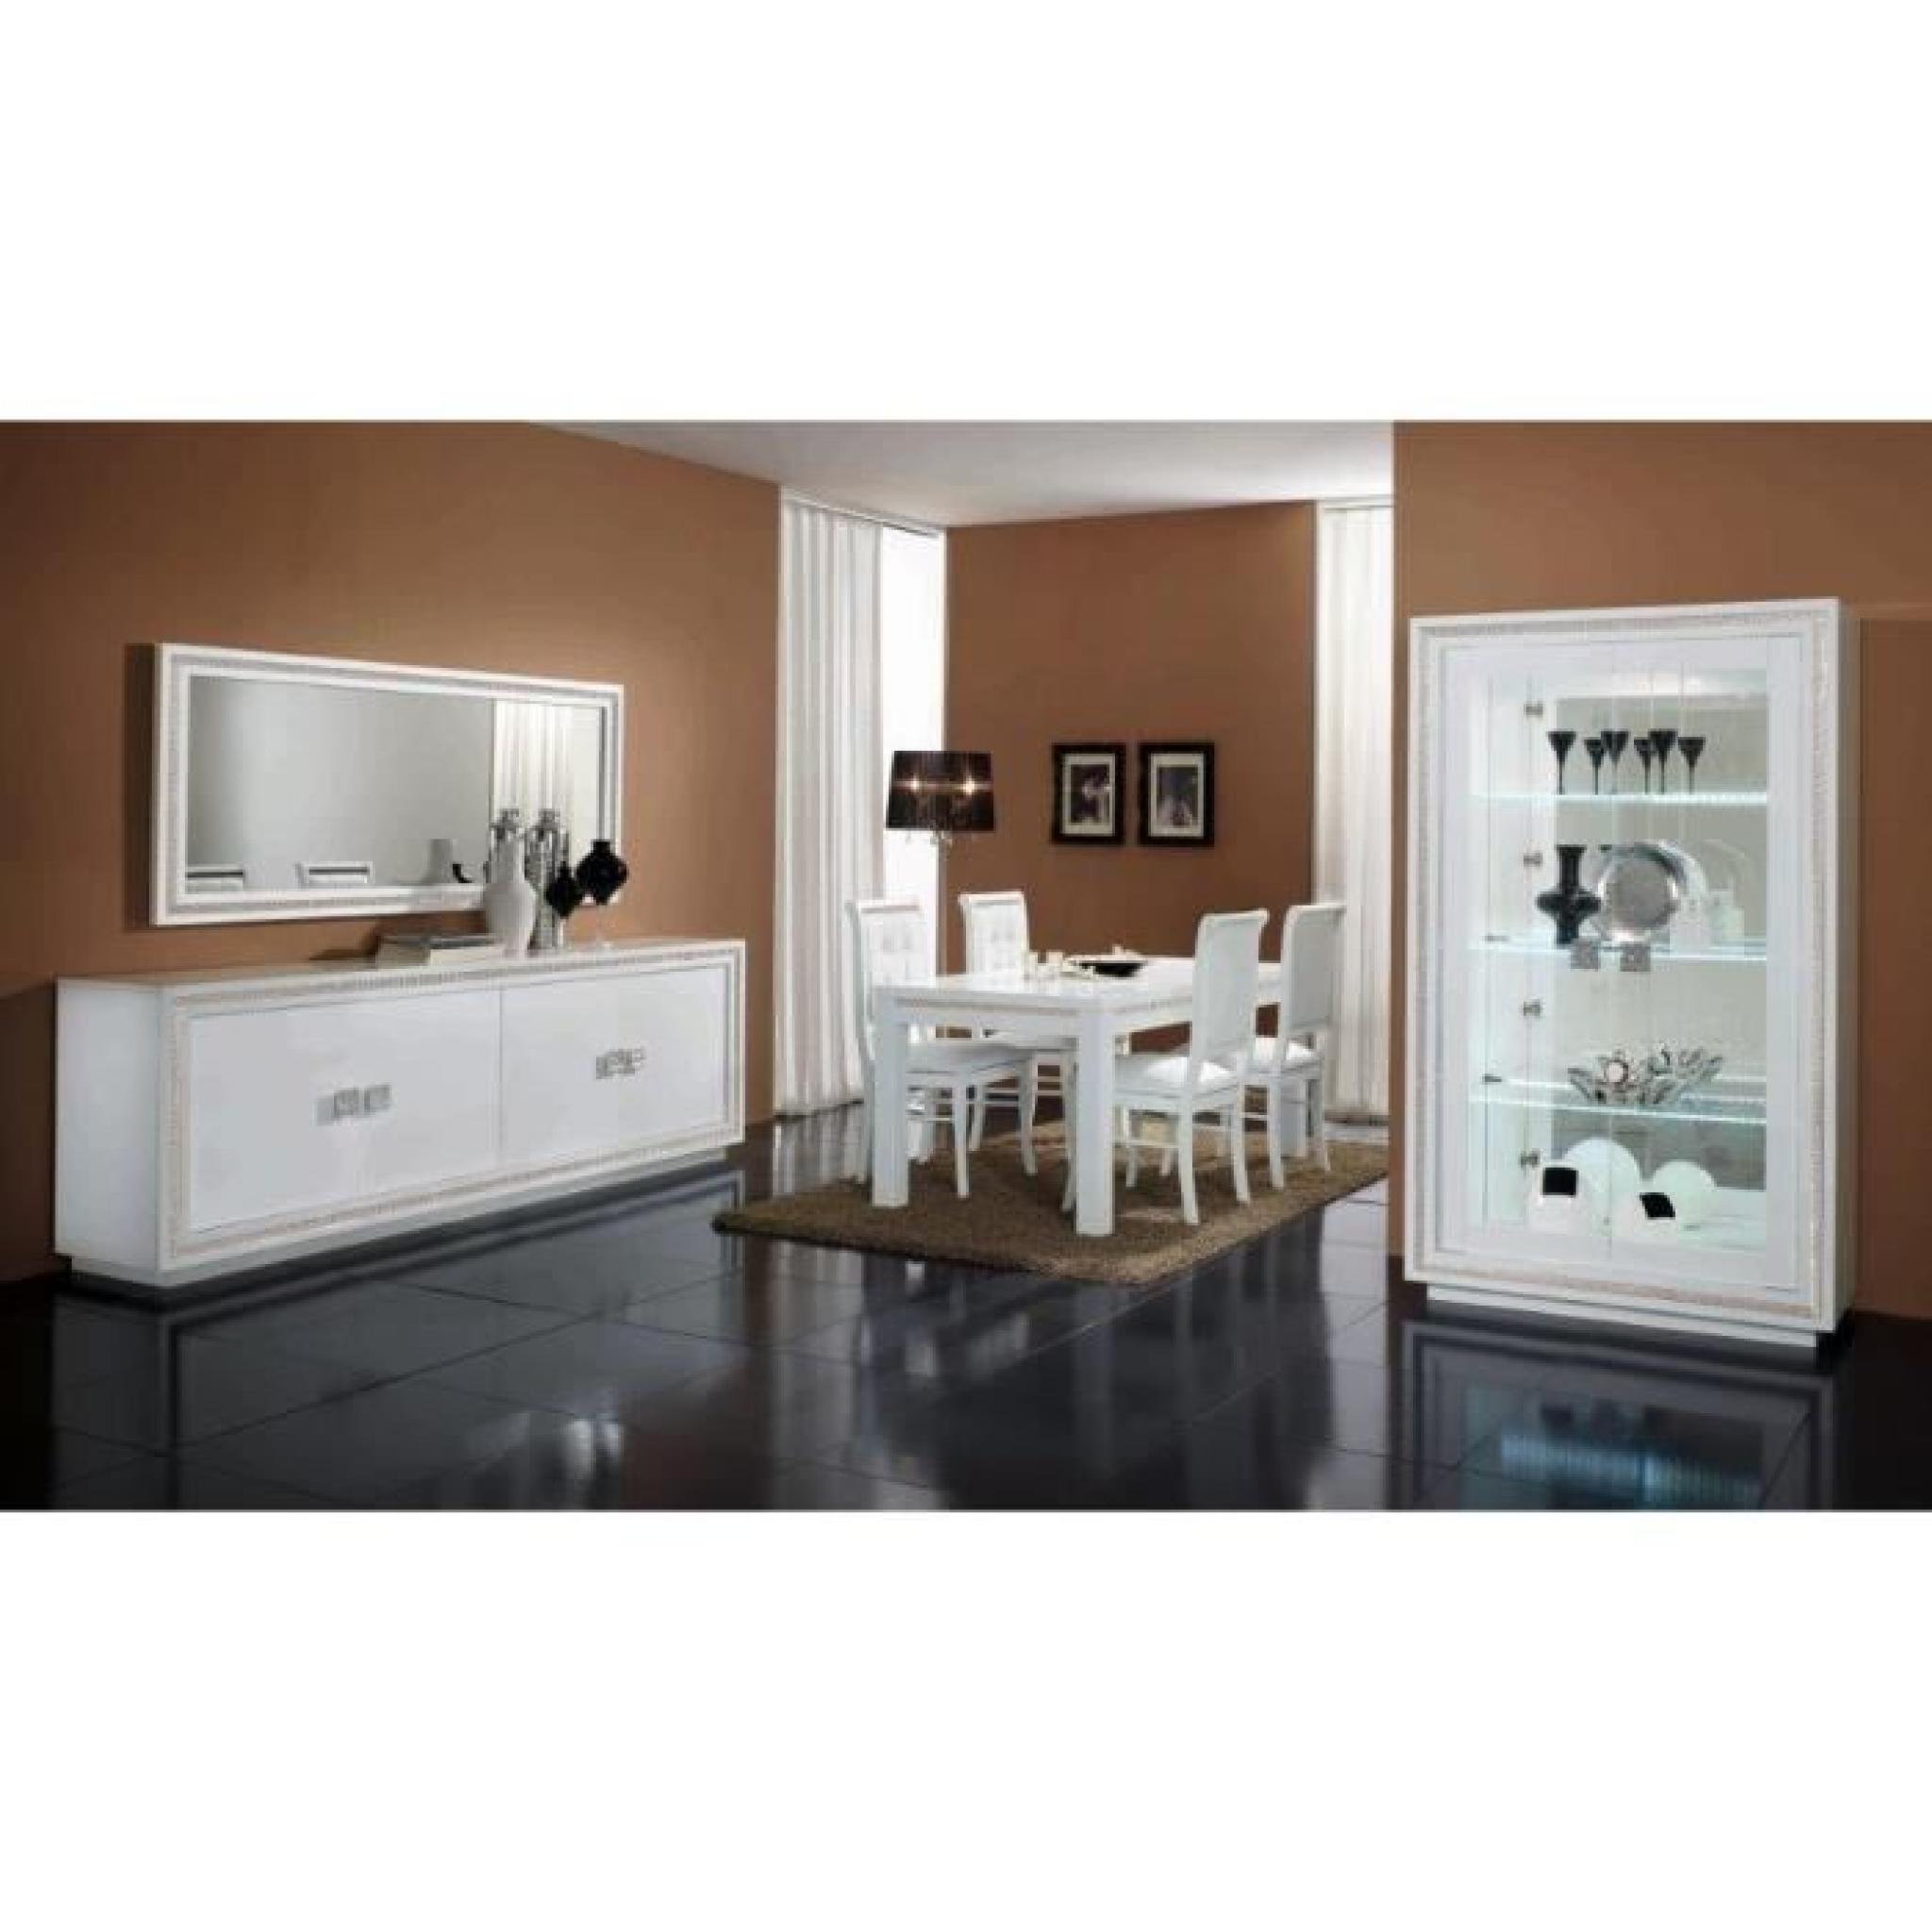 prestige laquee blanche ensemble salle a manger vitrine 2 portes meuble tv table salon. Black Bedroom Furniture Sets. Home Design Ideas